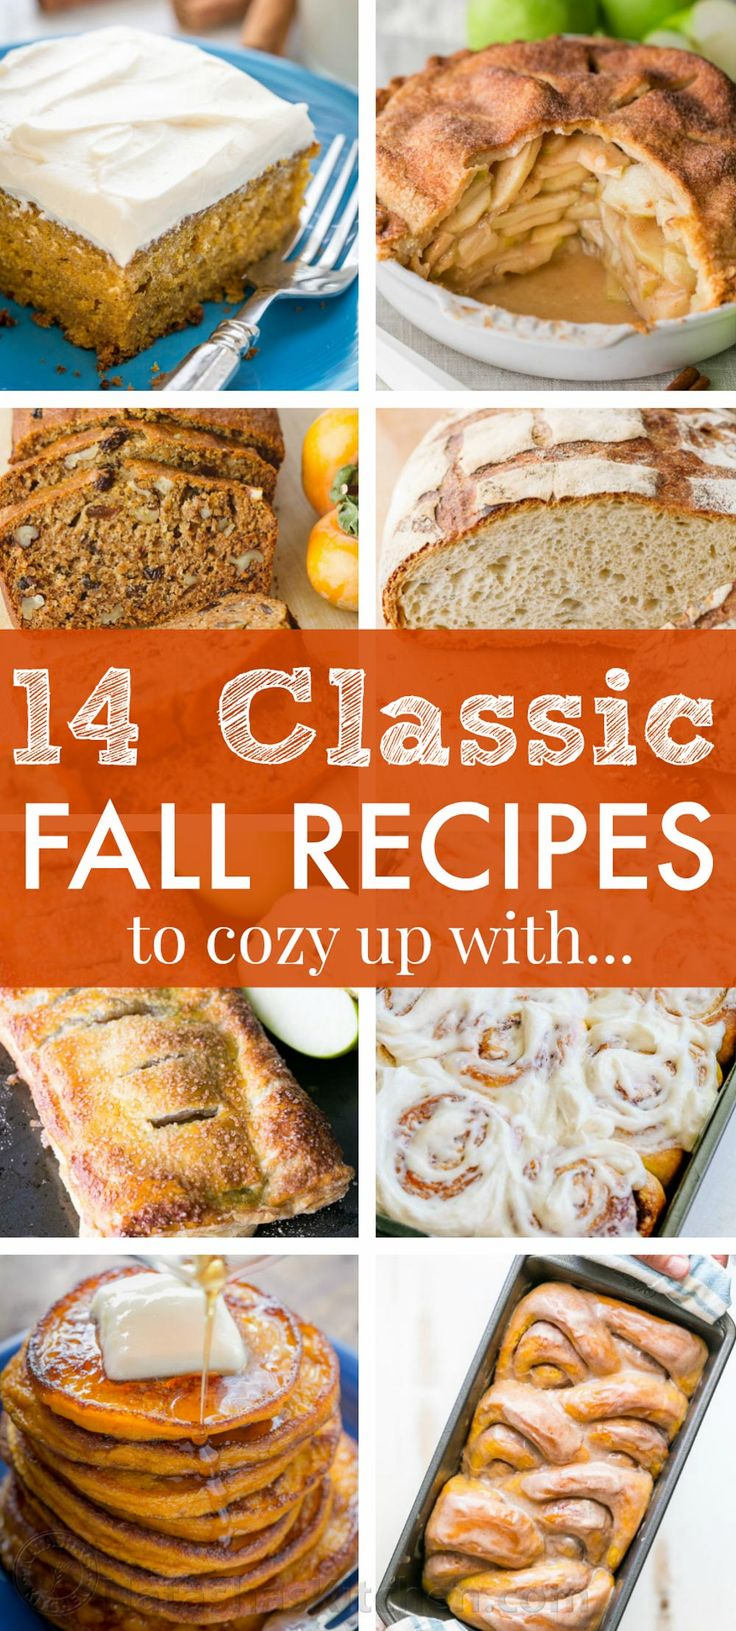 14 Cozy Fall Recipes + At The Pumpkin Patch